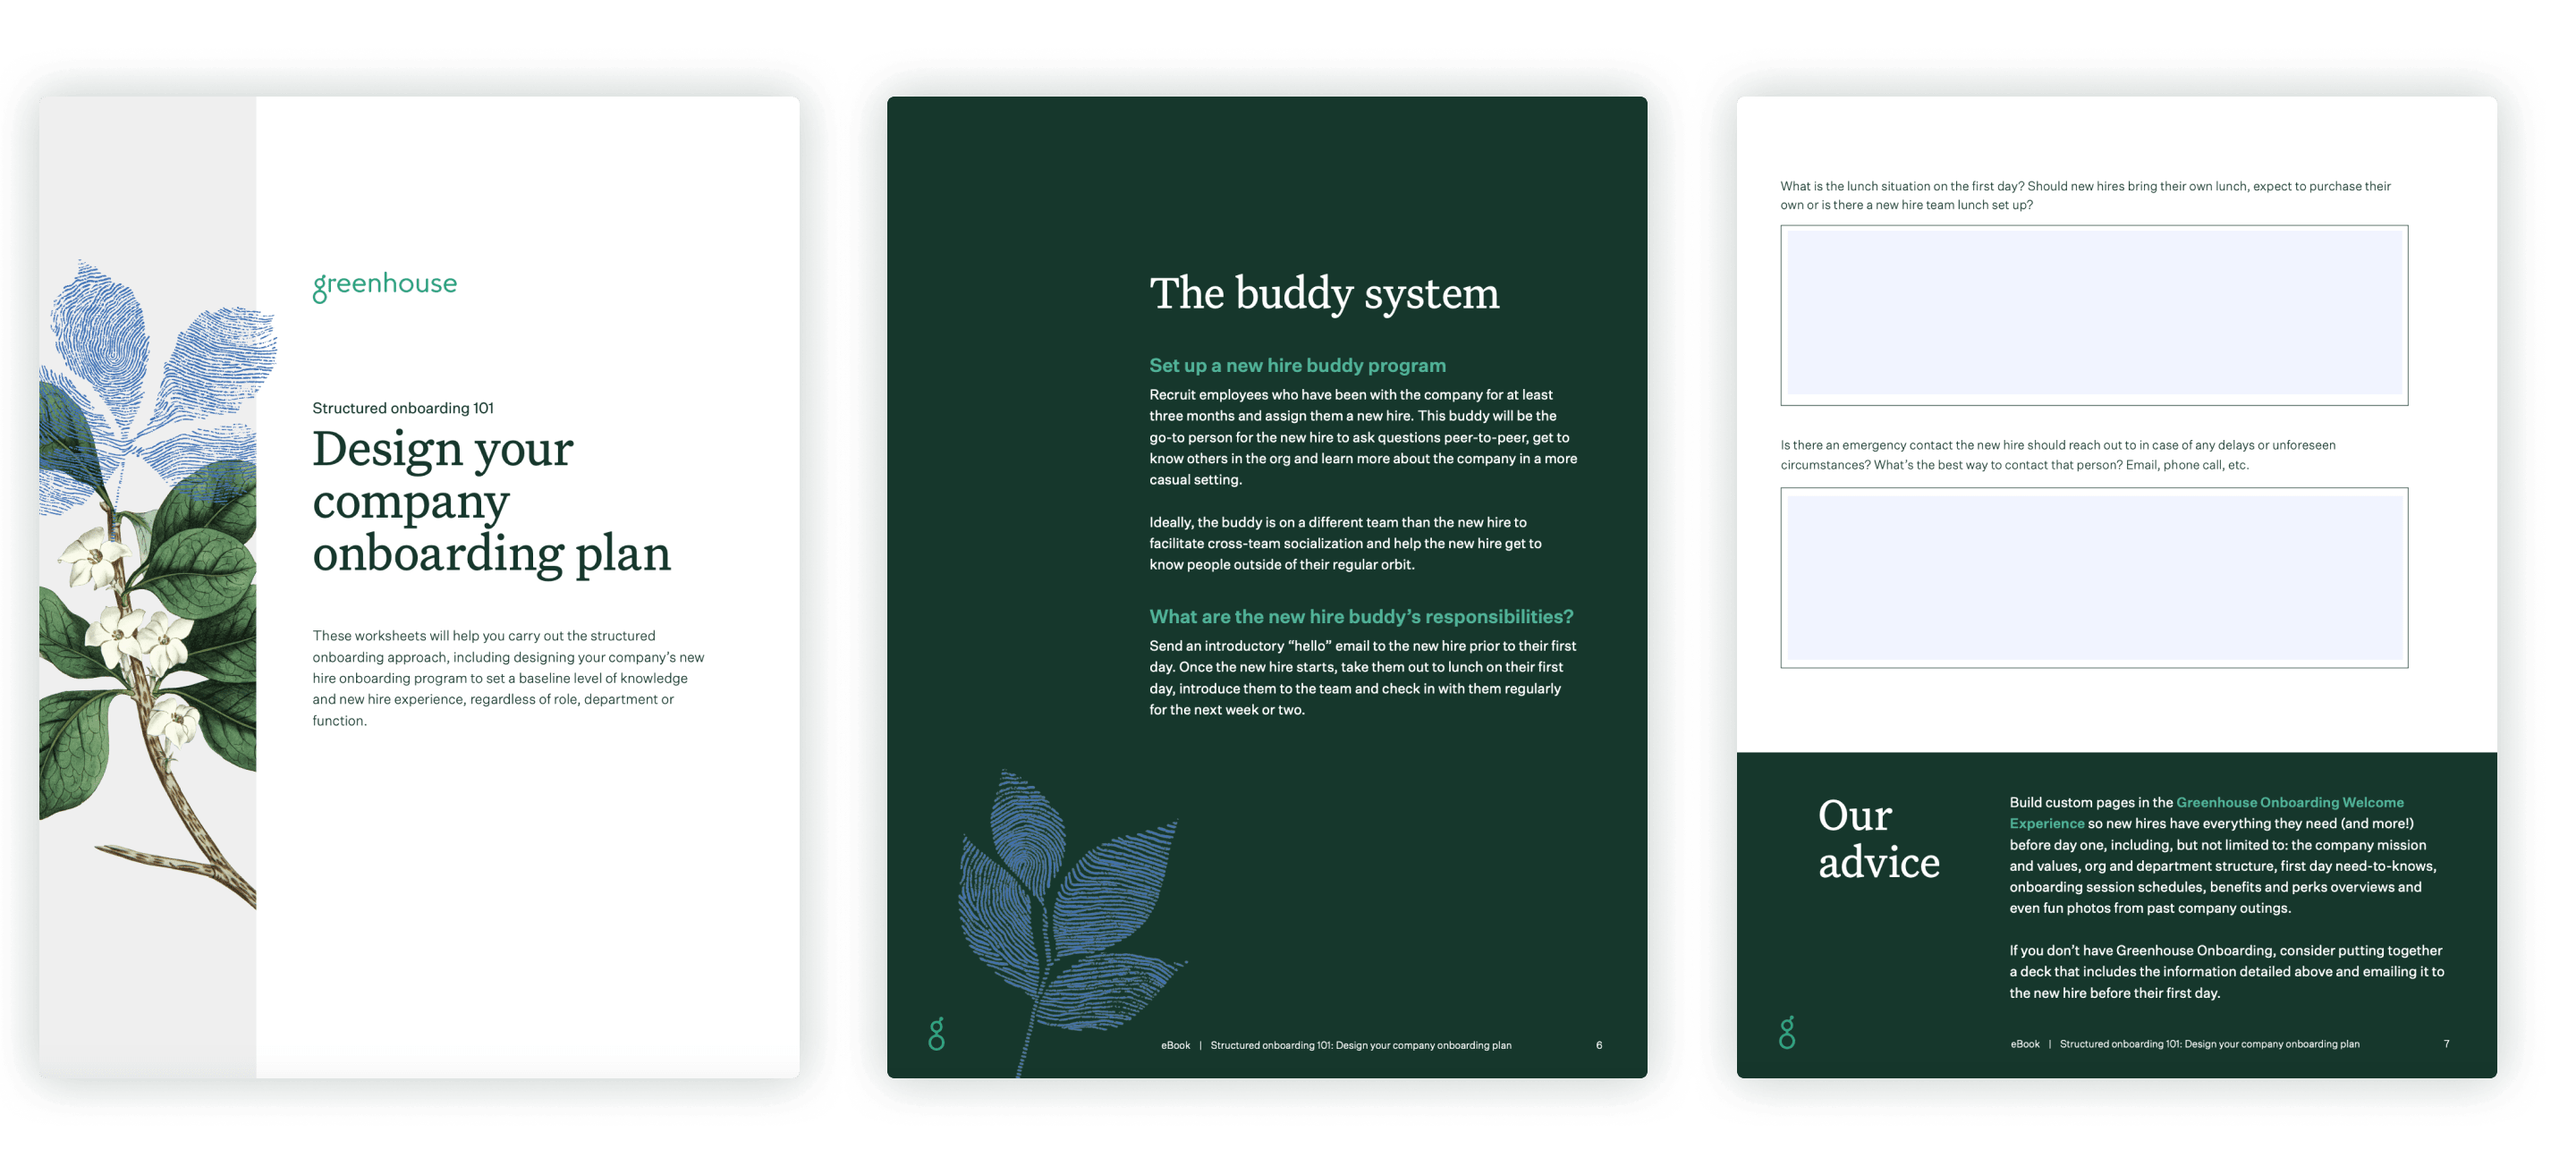 Sample pages of the design your company onboarding plan eBook